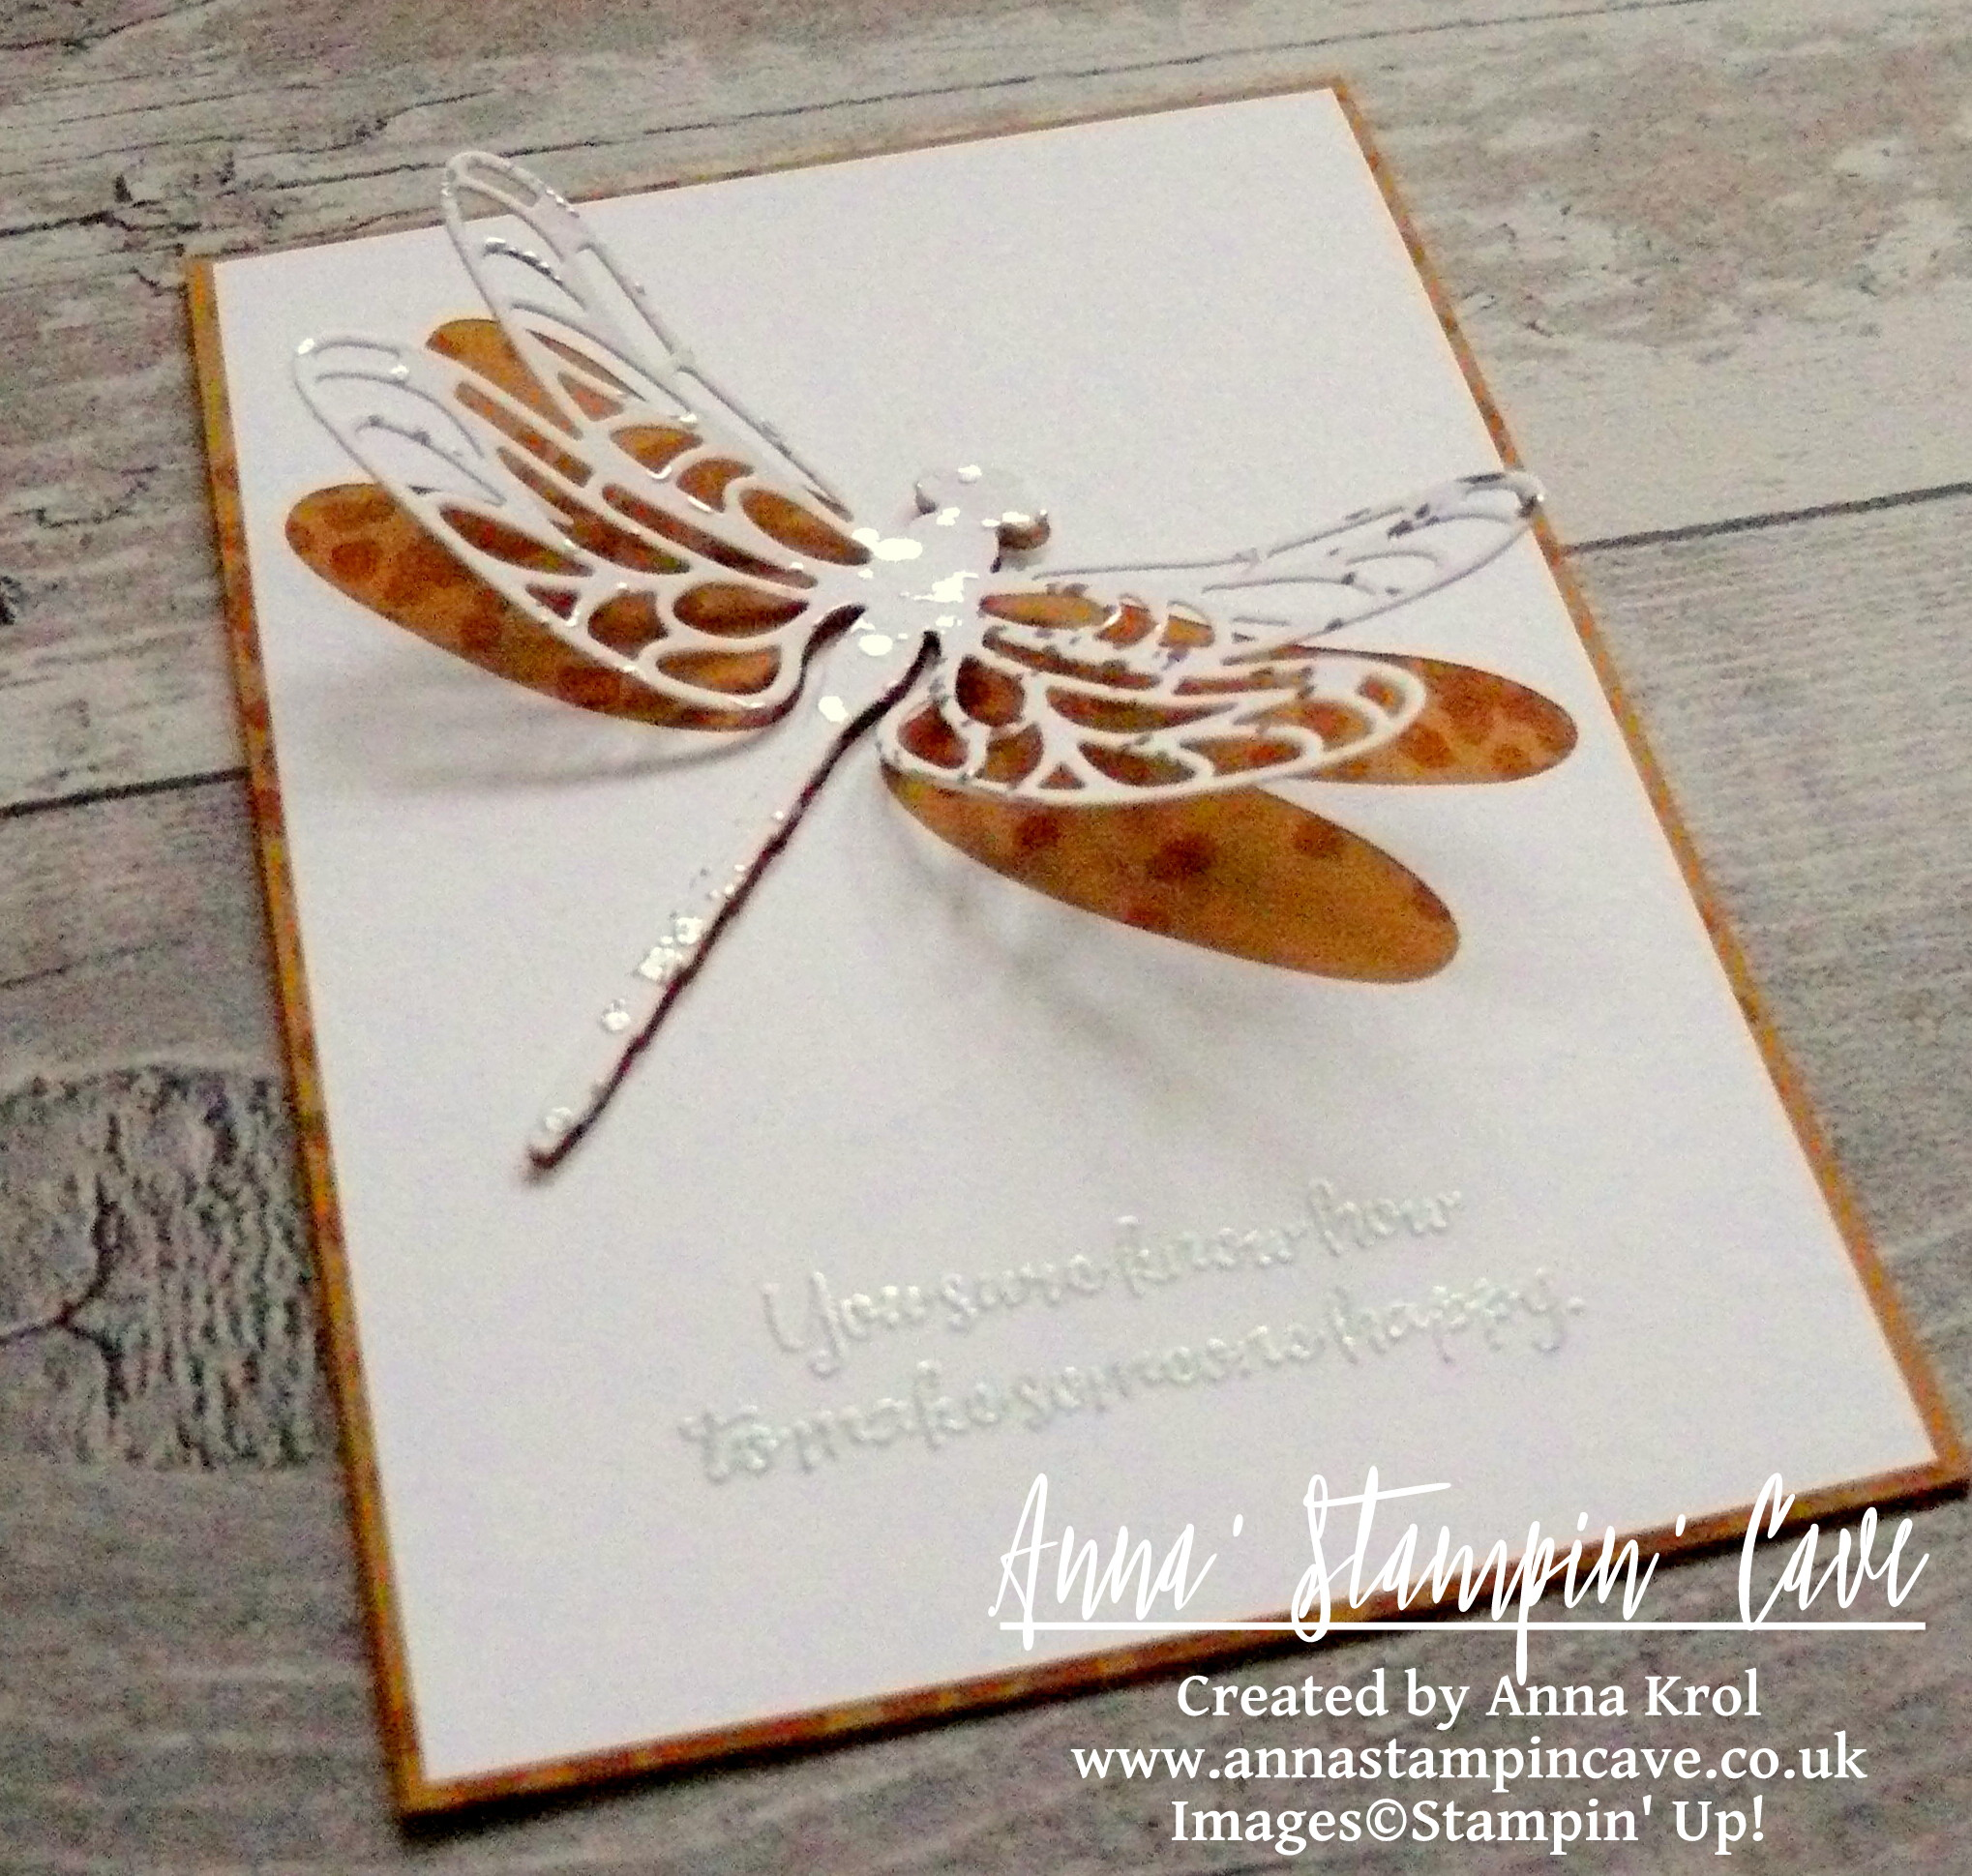 anna-stampin-cave-stampin-up-dragonfly-dreams-bundle-cas